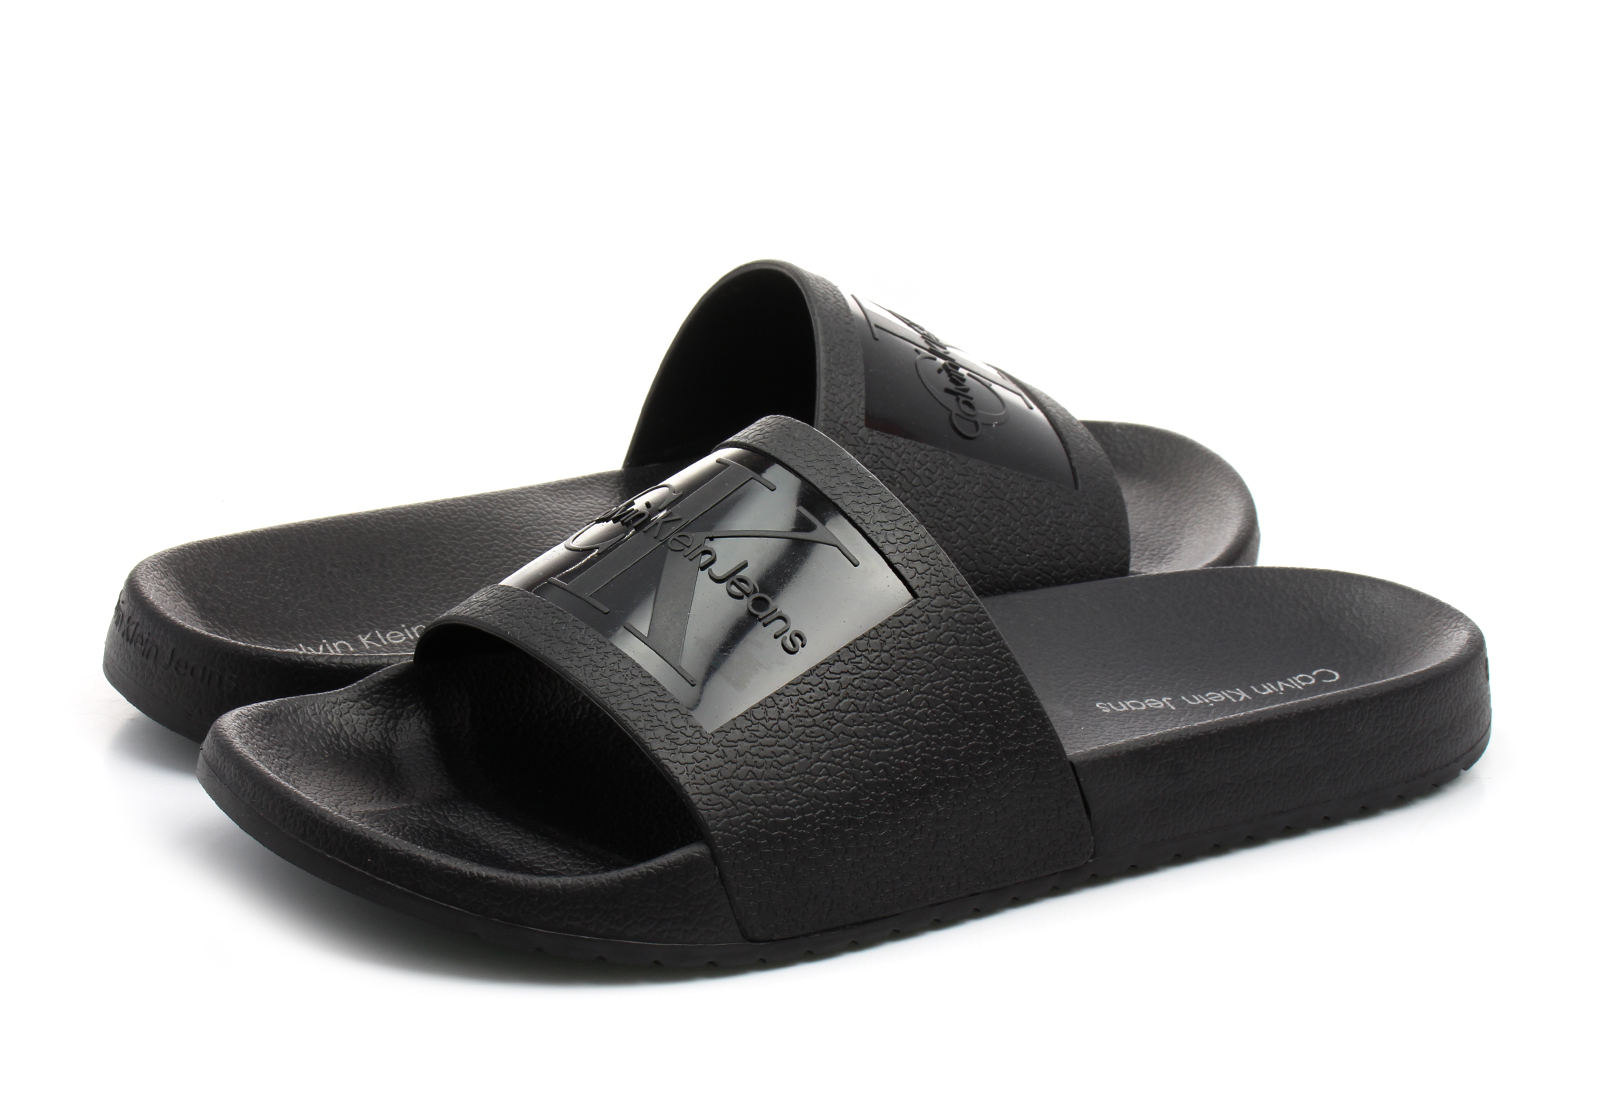 calvin klein jeans slippers vincenzo s0547 blk. Black Bedroom Furniture Sets. Home Design Ideas